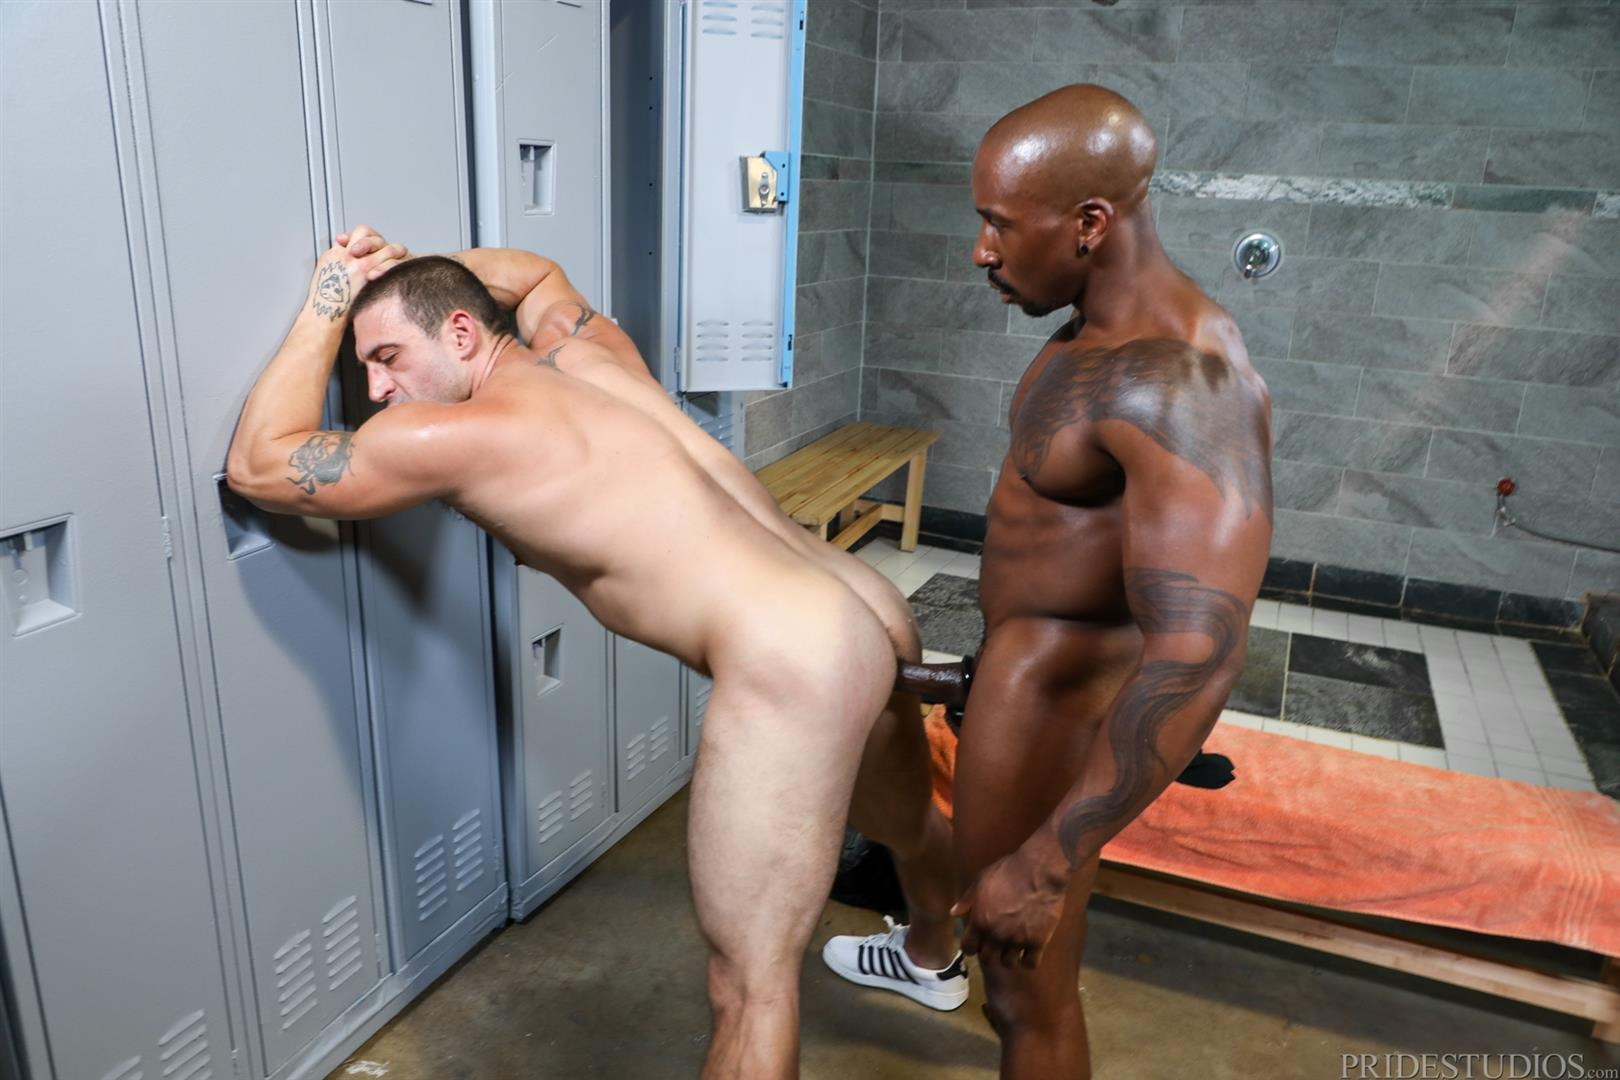 Extra-Big-Dicks-Max-Konnor-and-Ceasar-Ventura-Interracial-Bareback-Fucking-Big-Black-Cock-09 Cruising For Bareback Big Black Dick At The Gym